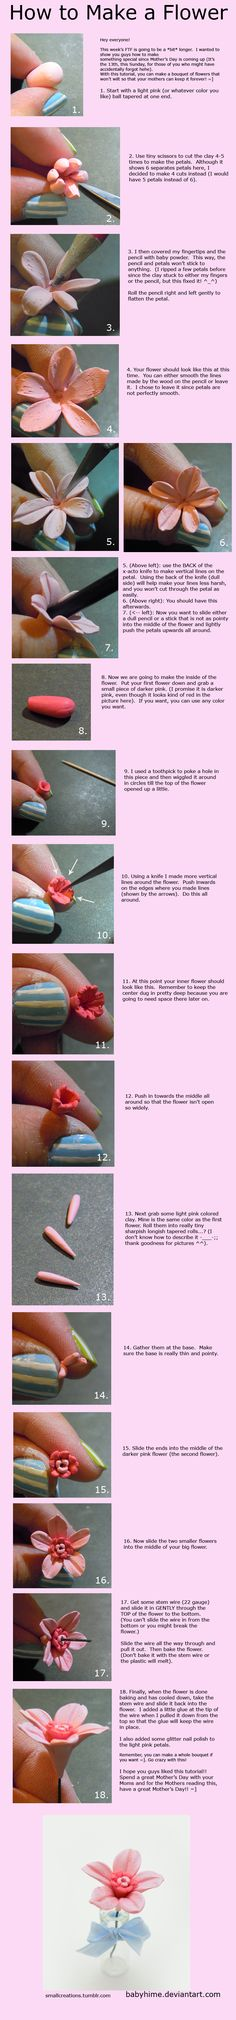 how to make a clay flower tutorial